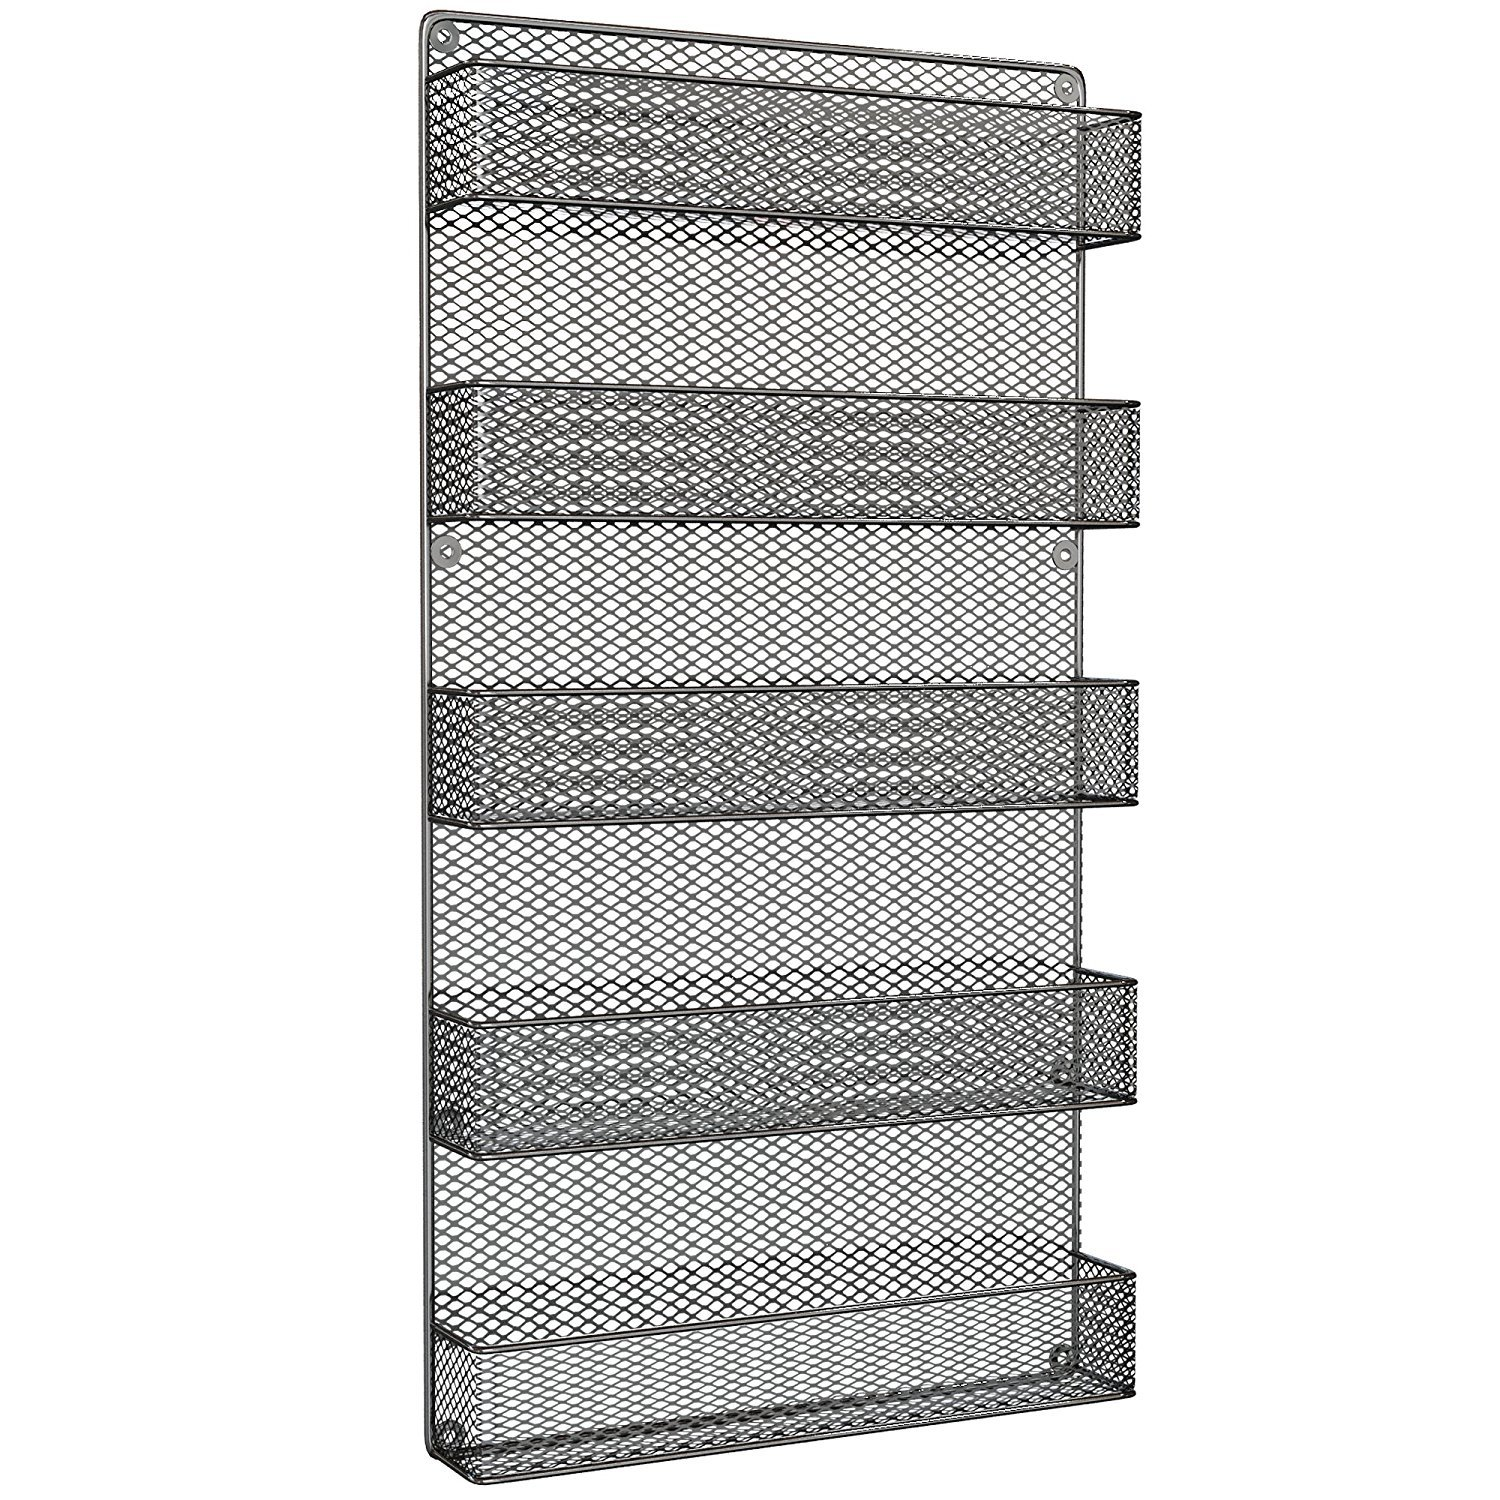 Amazon.com: Spice Rack Organizer - Country Rustic Wire Style - Great ...